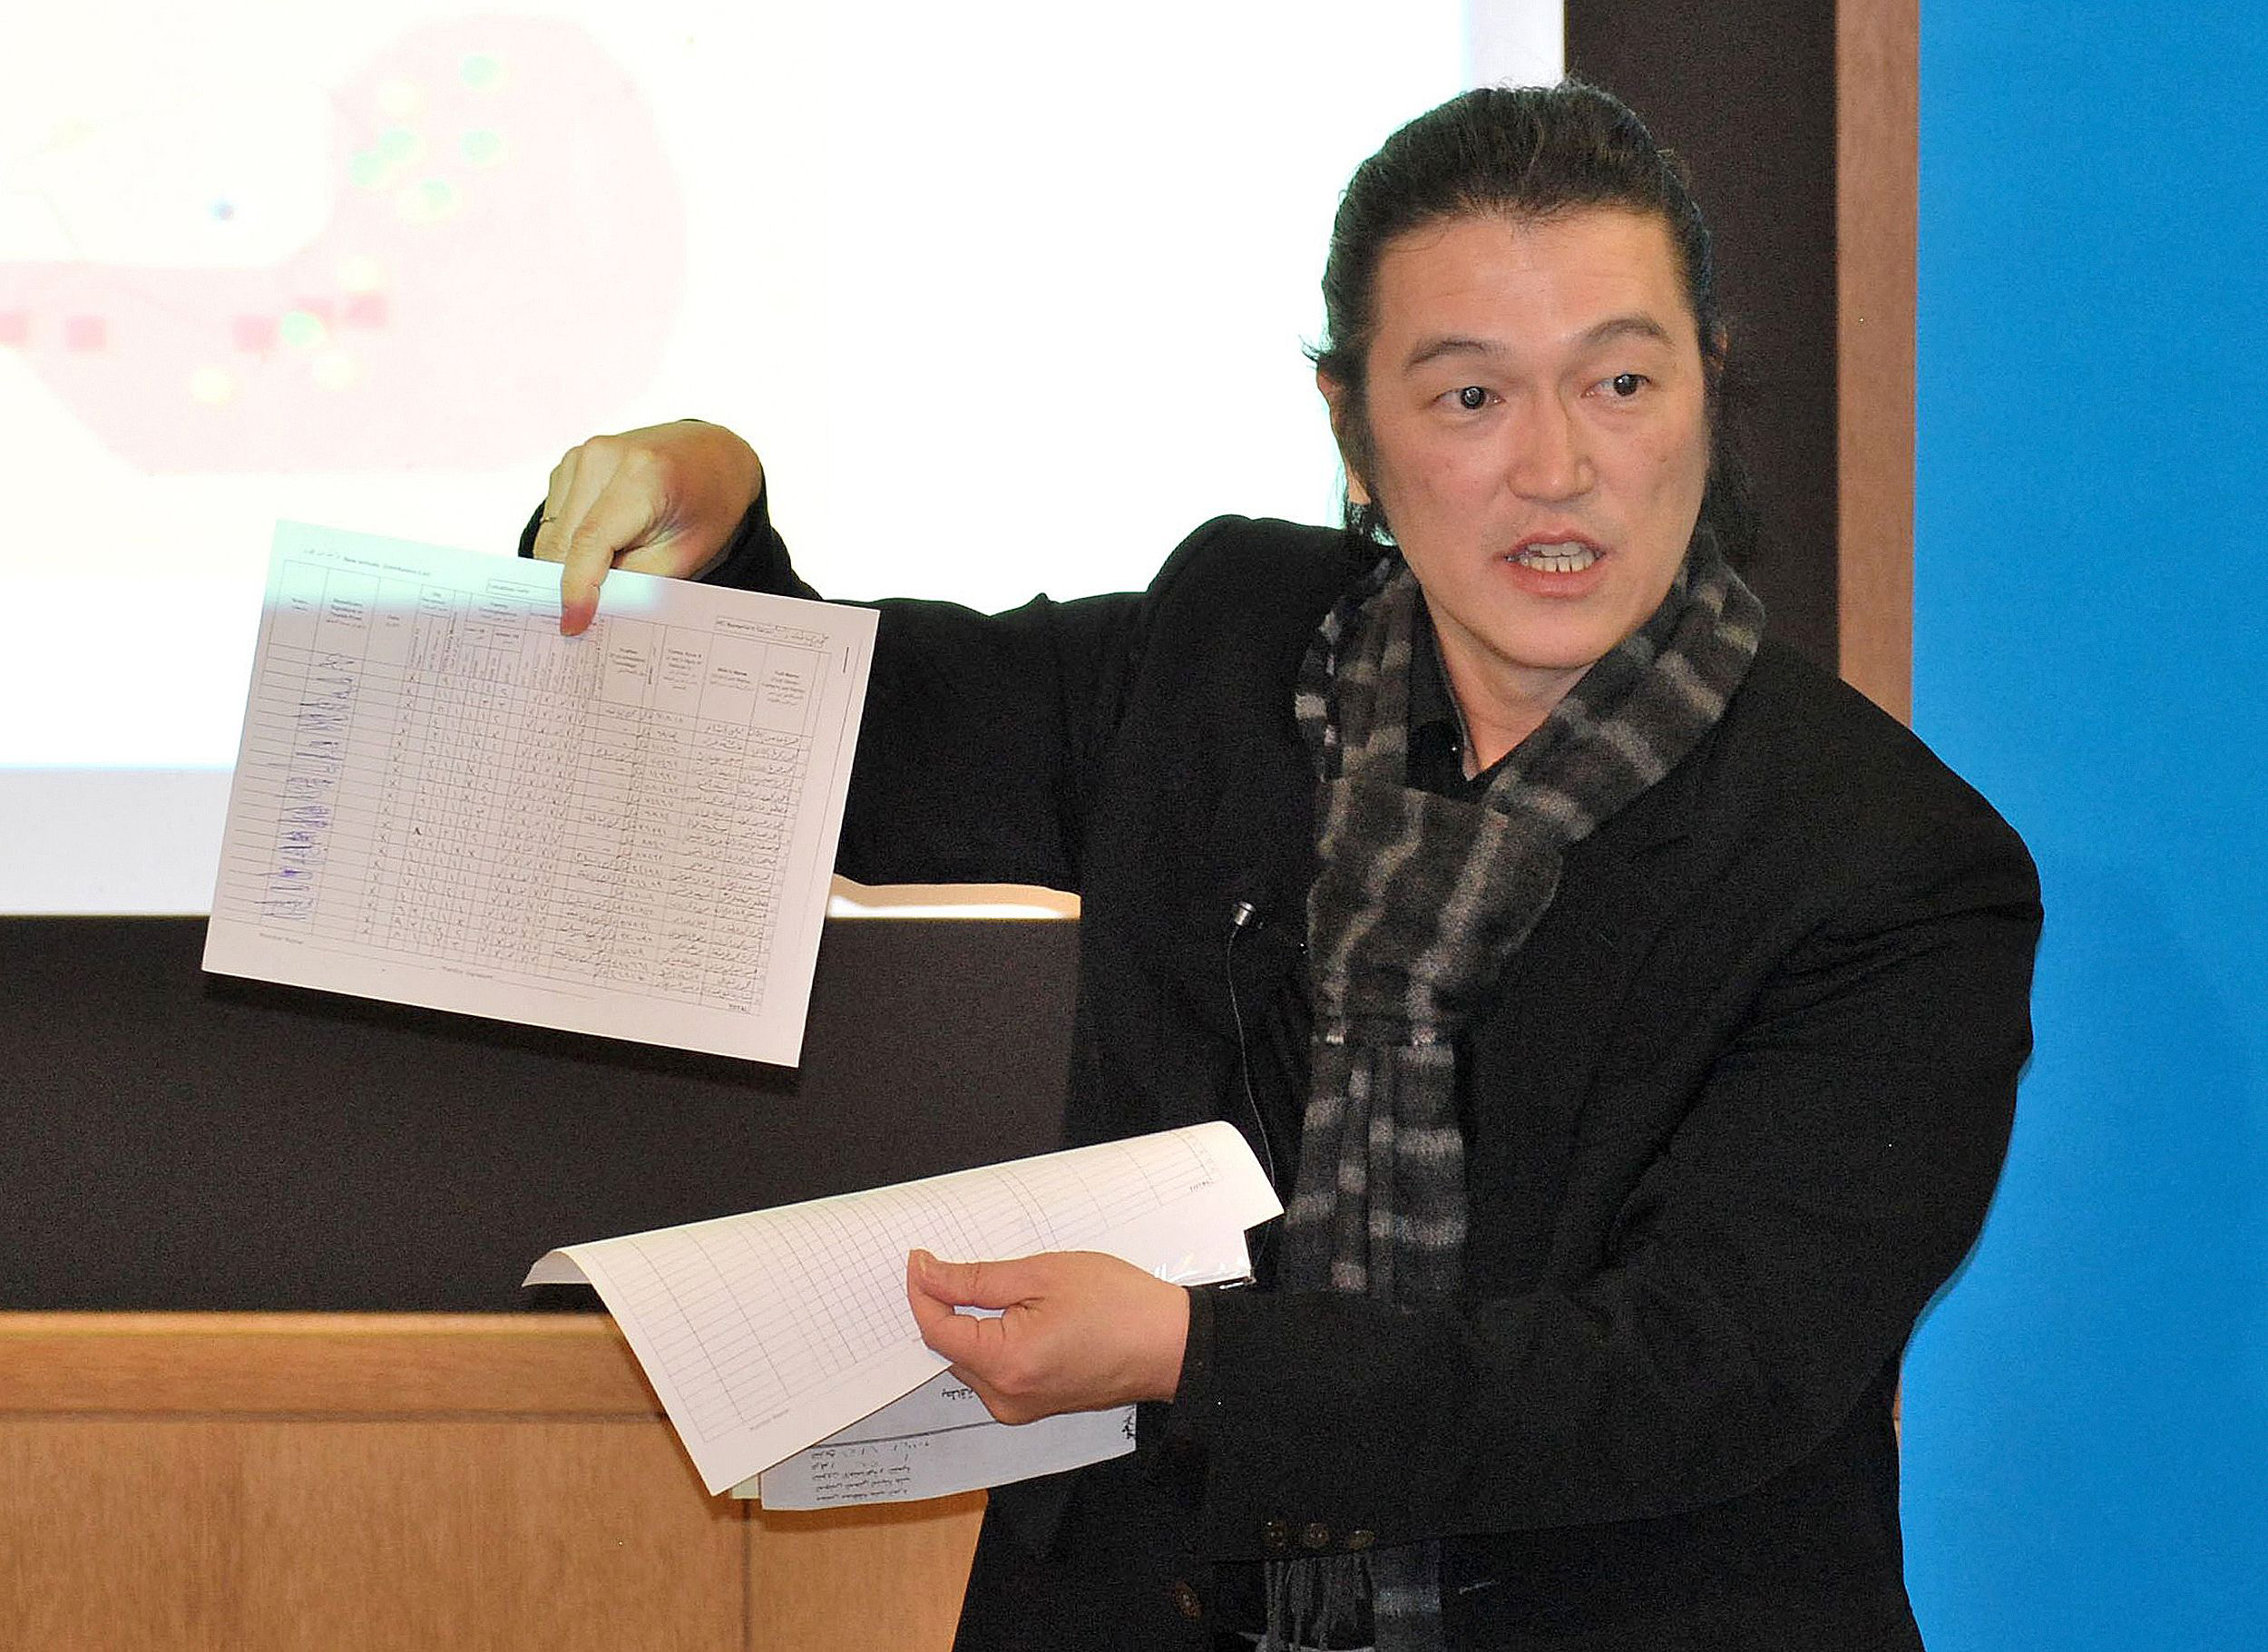 Taking risks: Journalist Kenji Goto sought to teach Japanese about suffering in other parts of the world. | AFP-JIJI